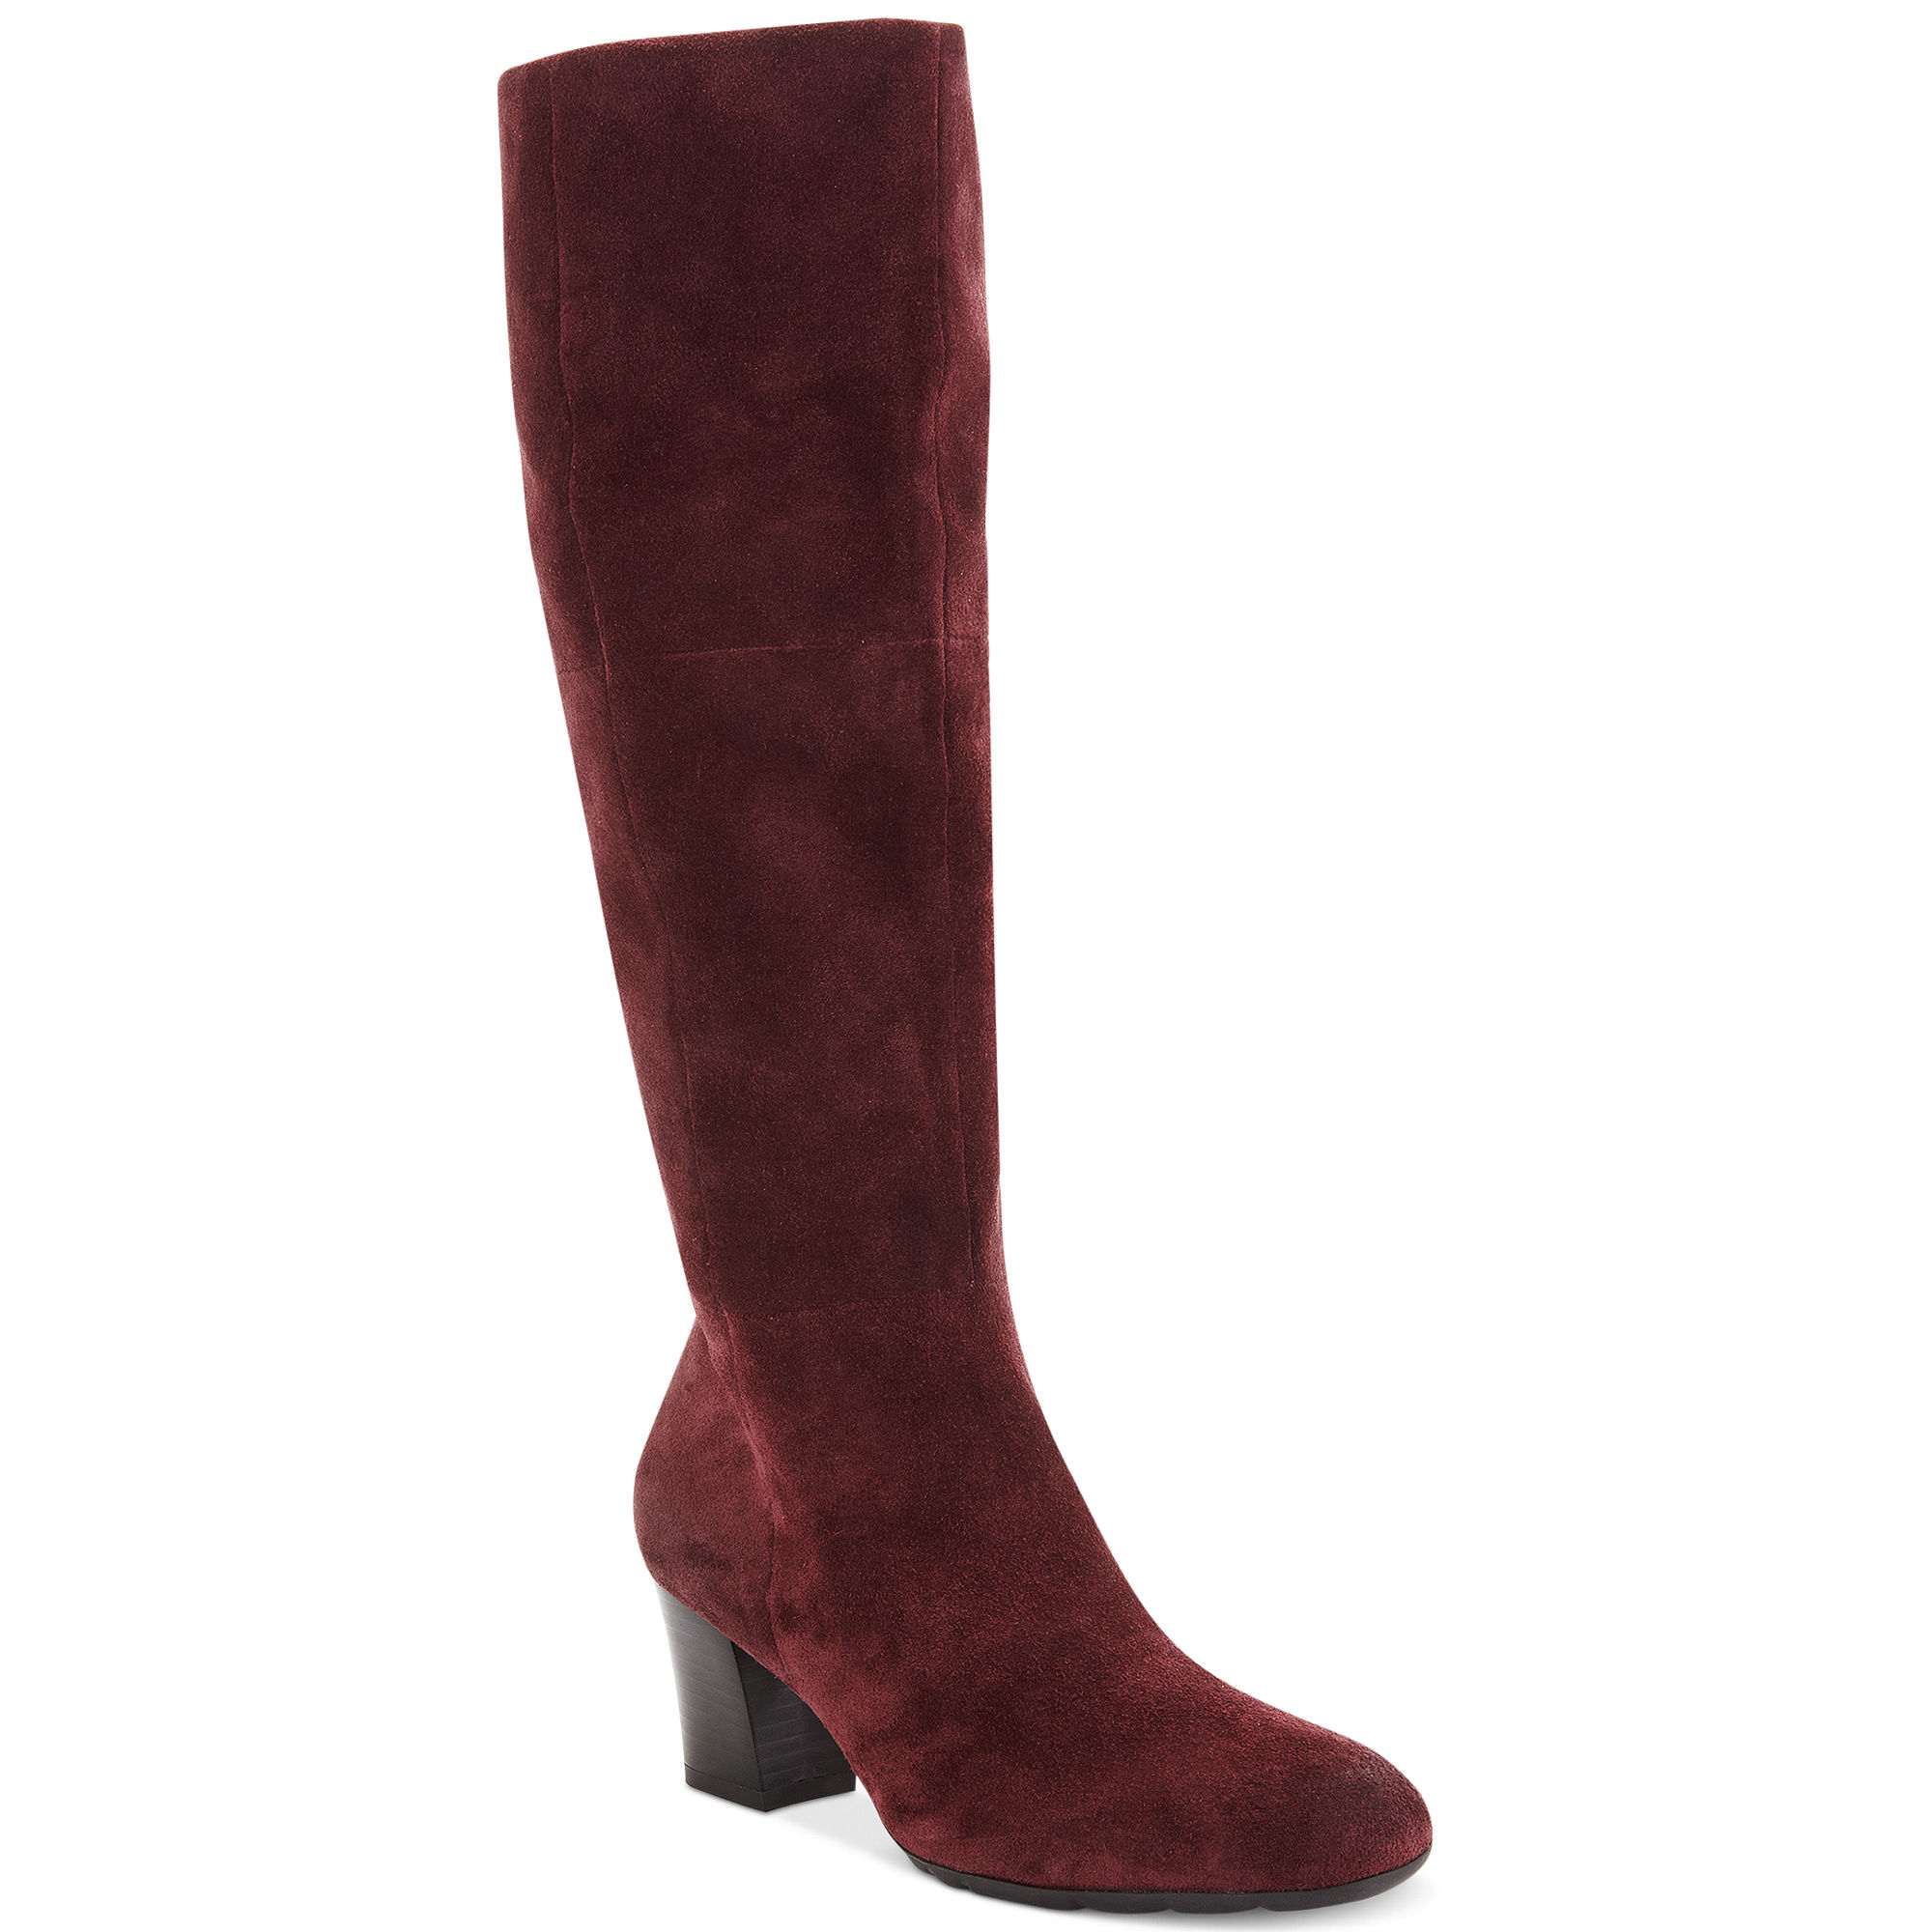 franco sarto dress boots in brown mulberry lyst